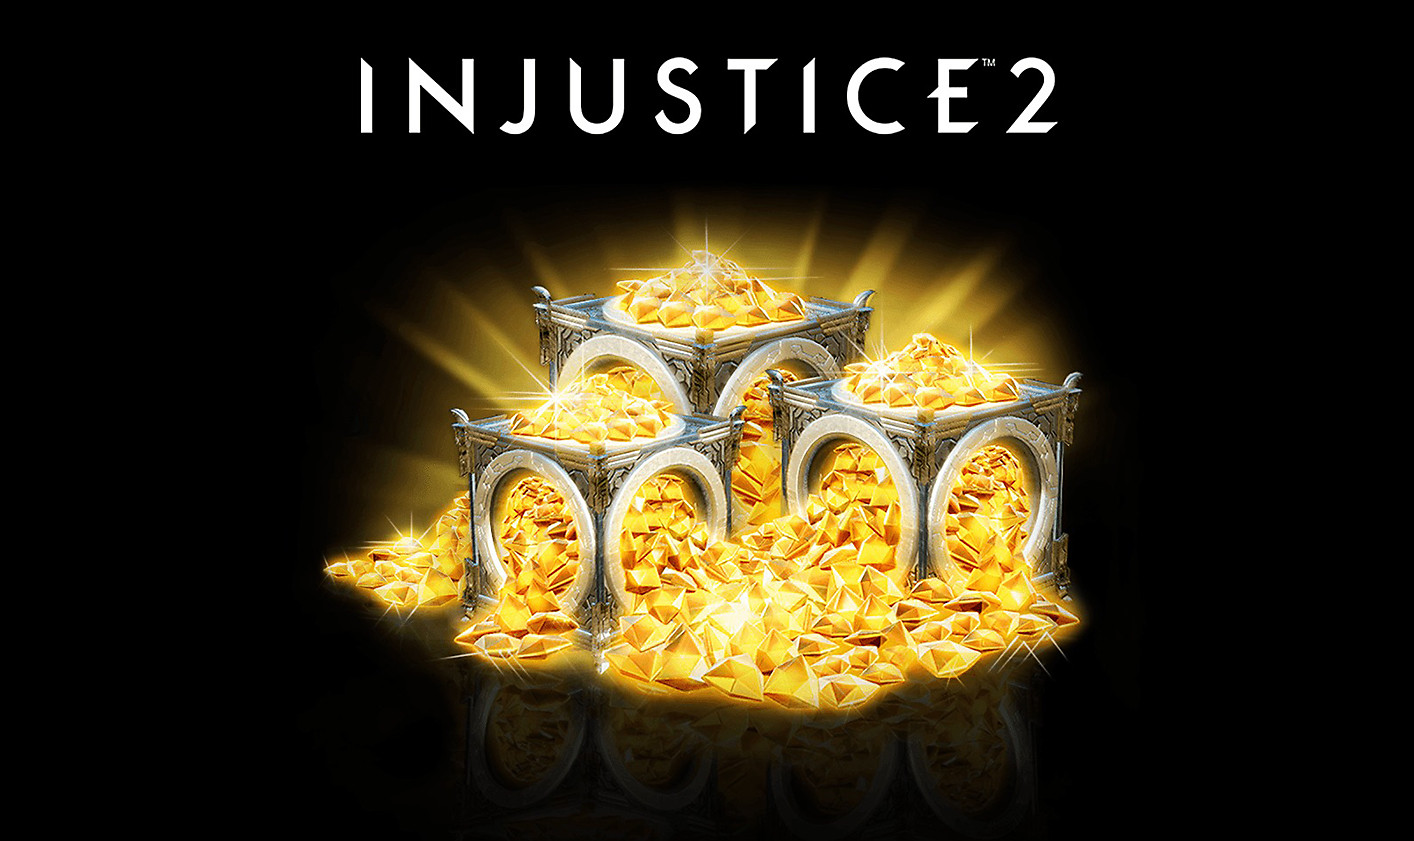 Injustice 2 Currency - PS4 Tournaments Prize for Stage 2